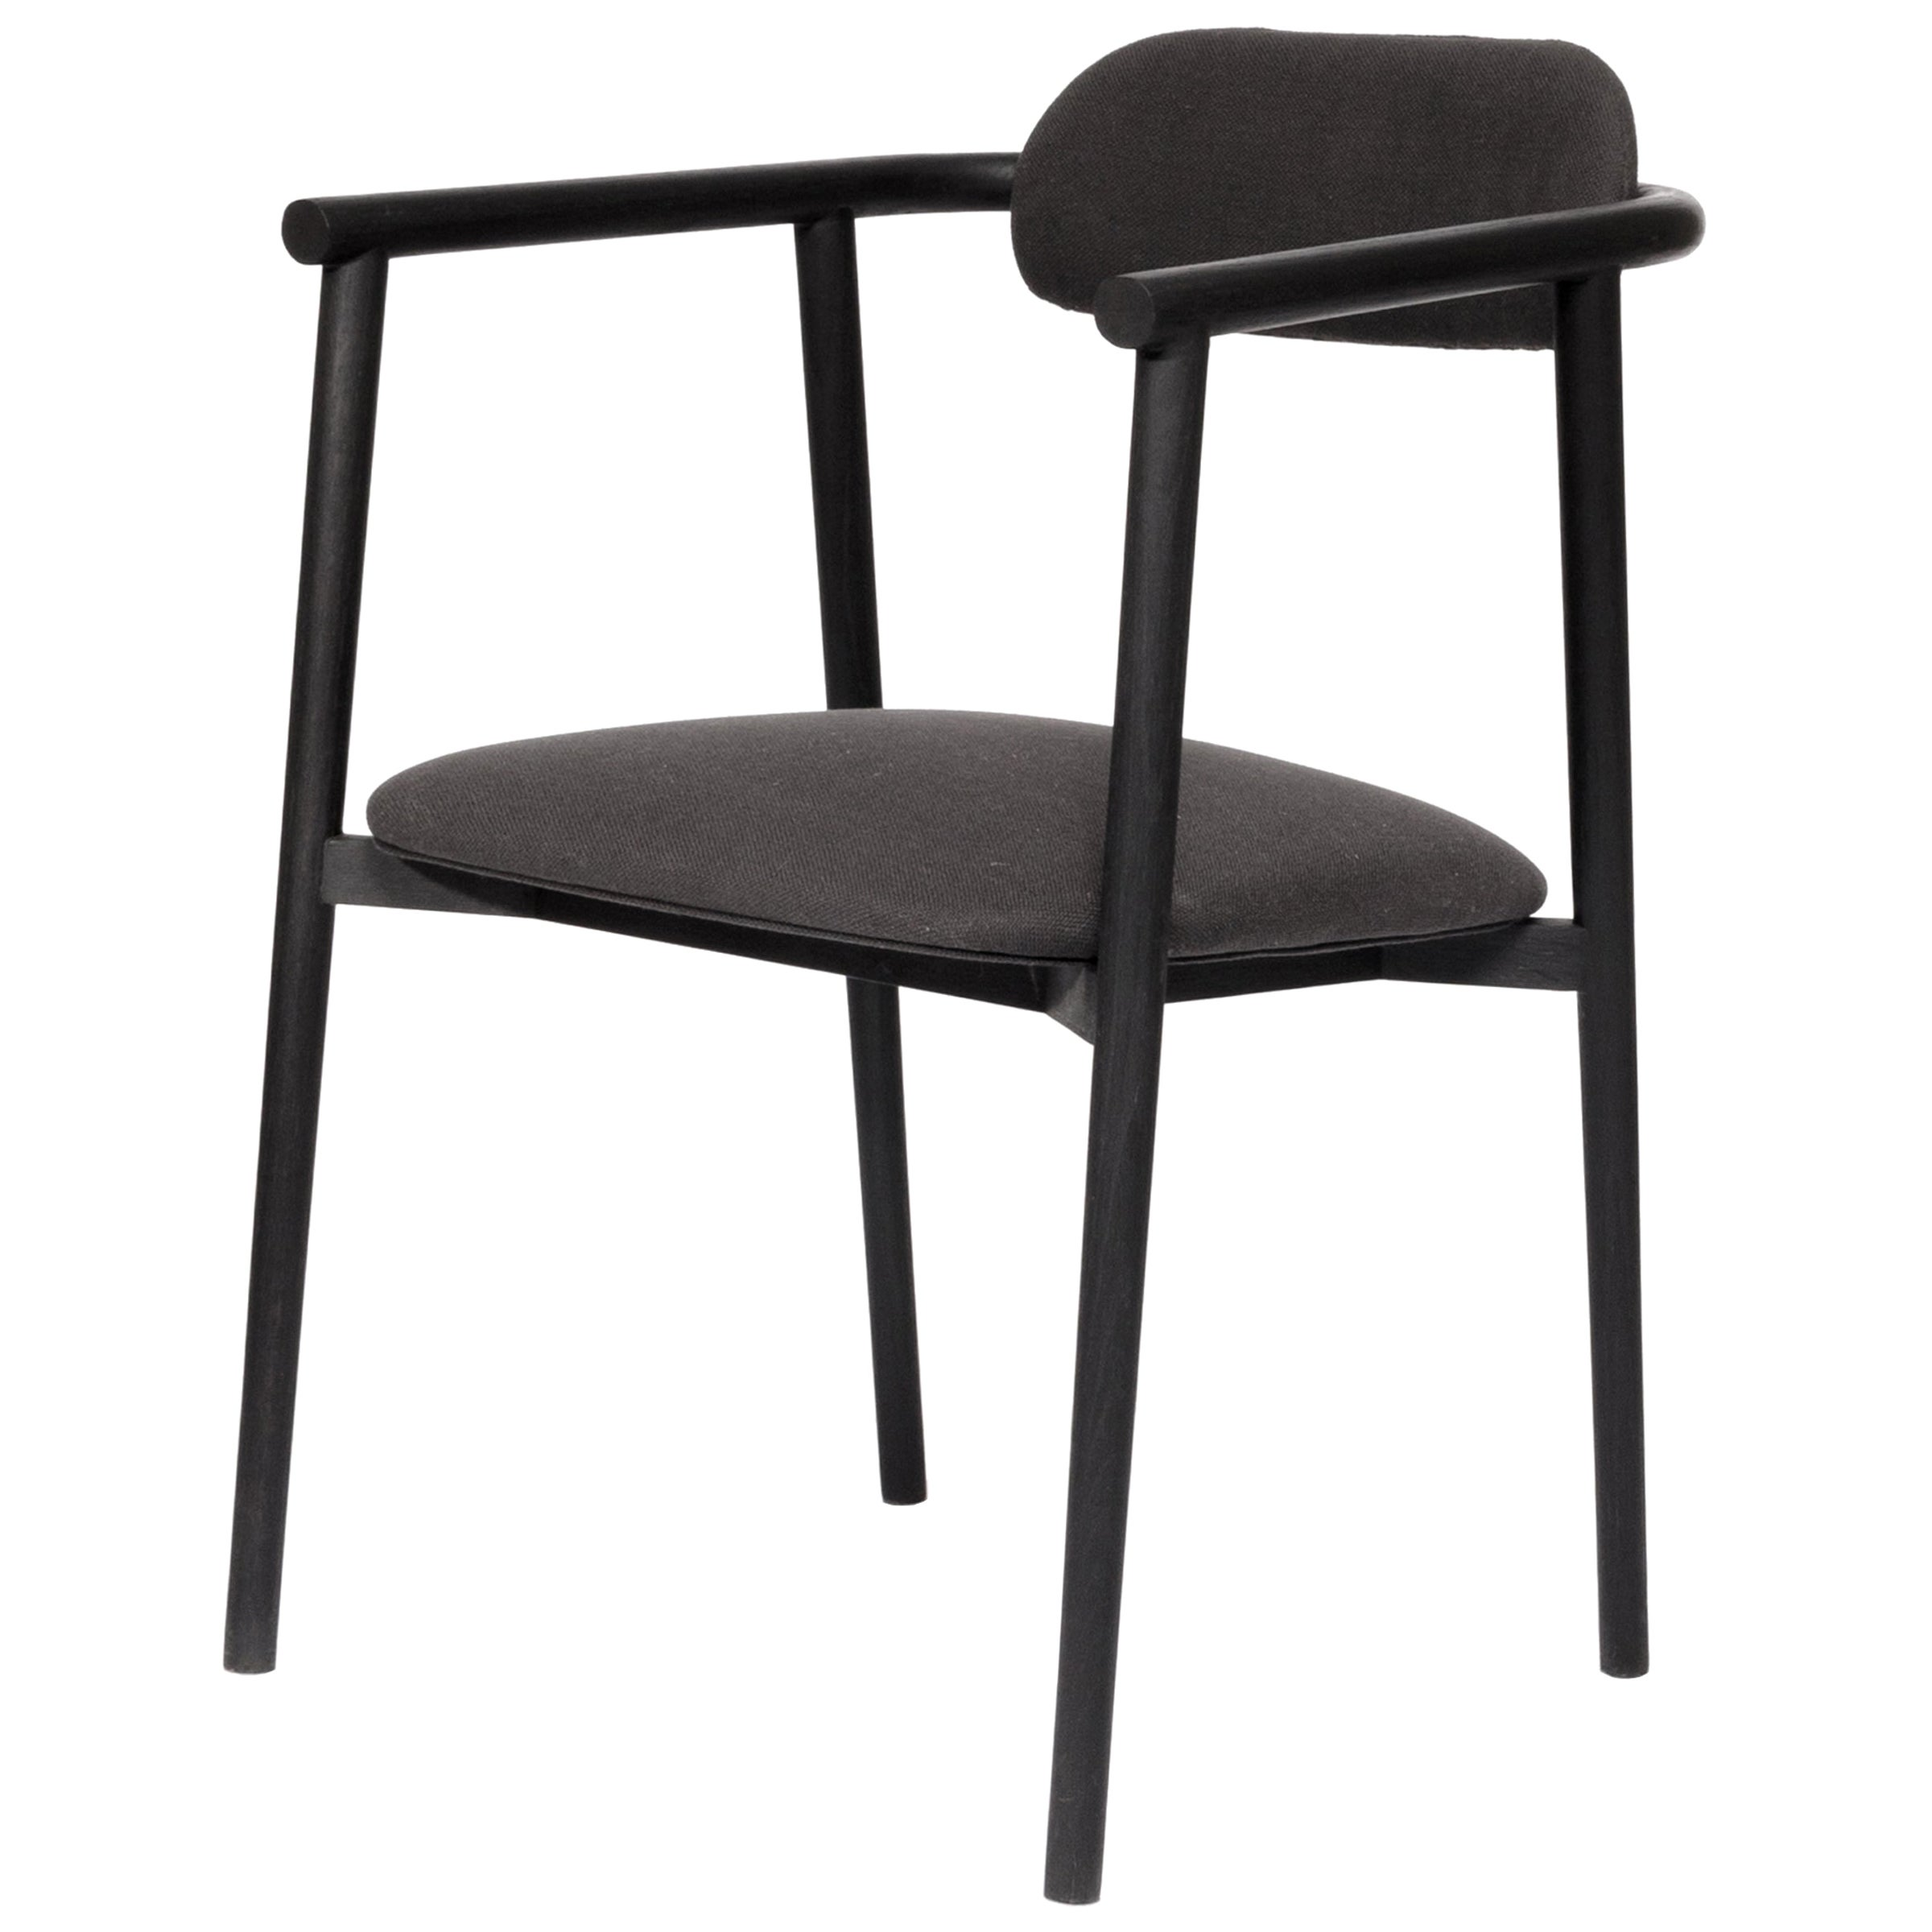 Neutra black Inked Oak Chair with Upholstered Backrest and Seat